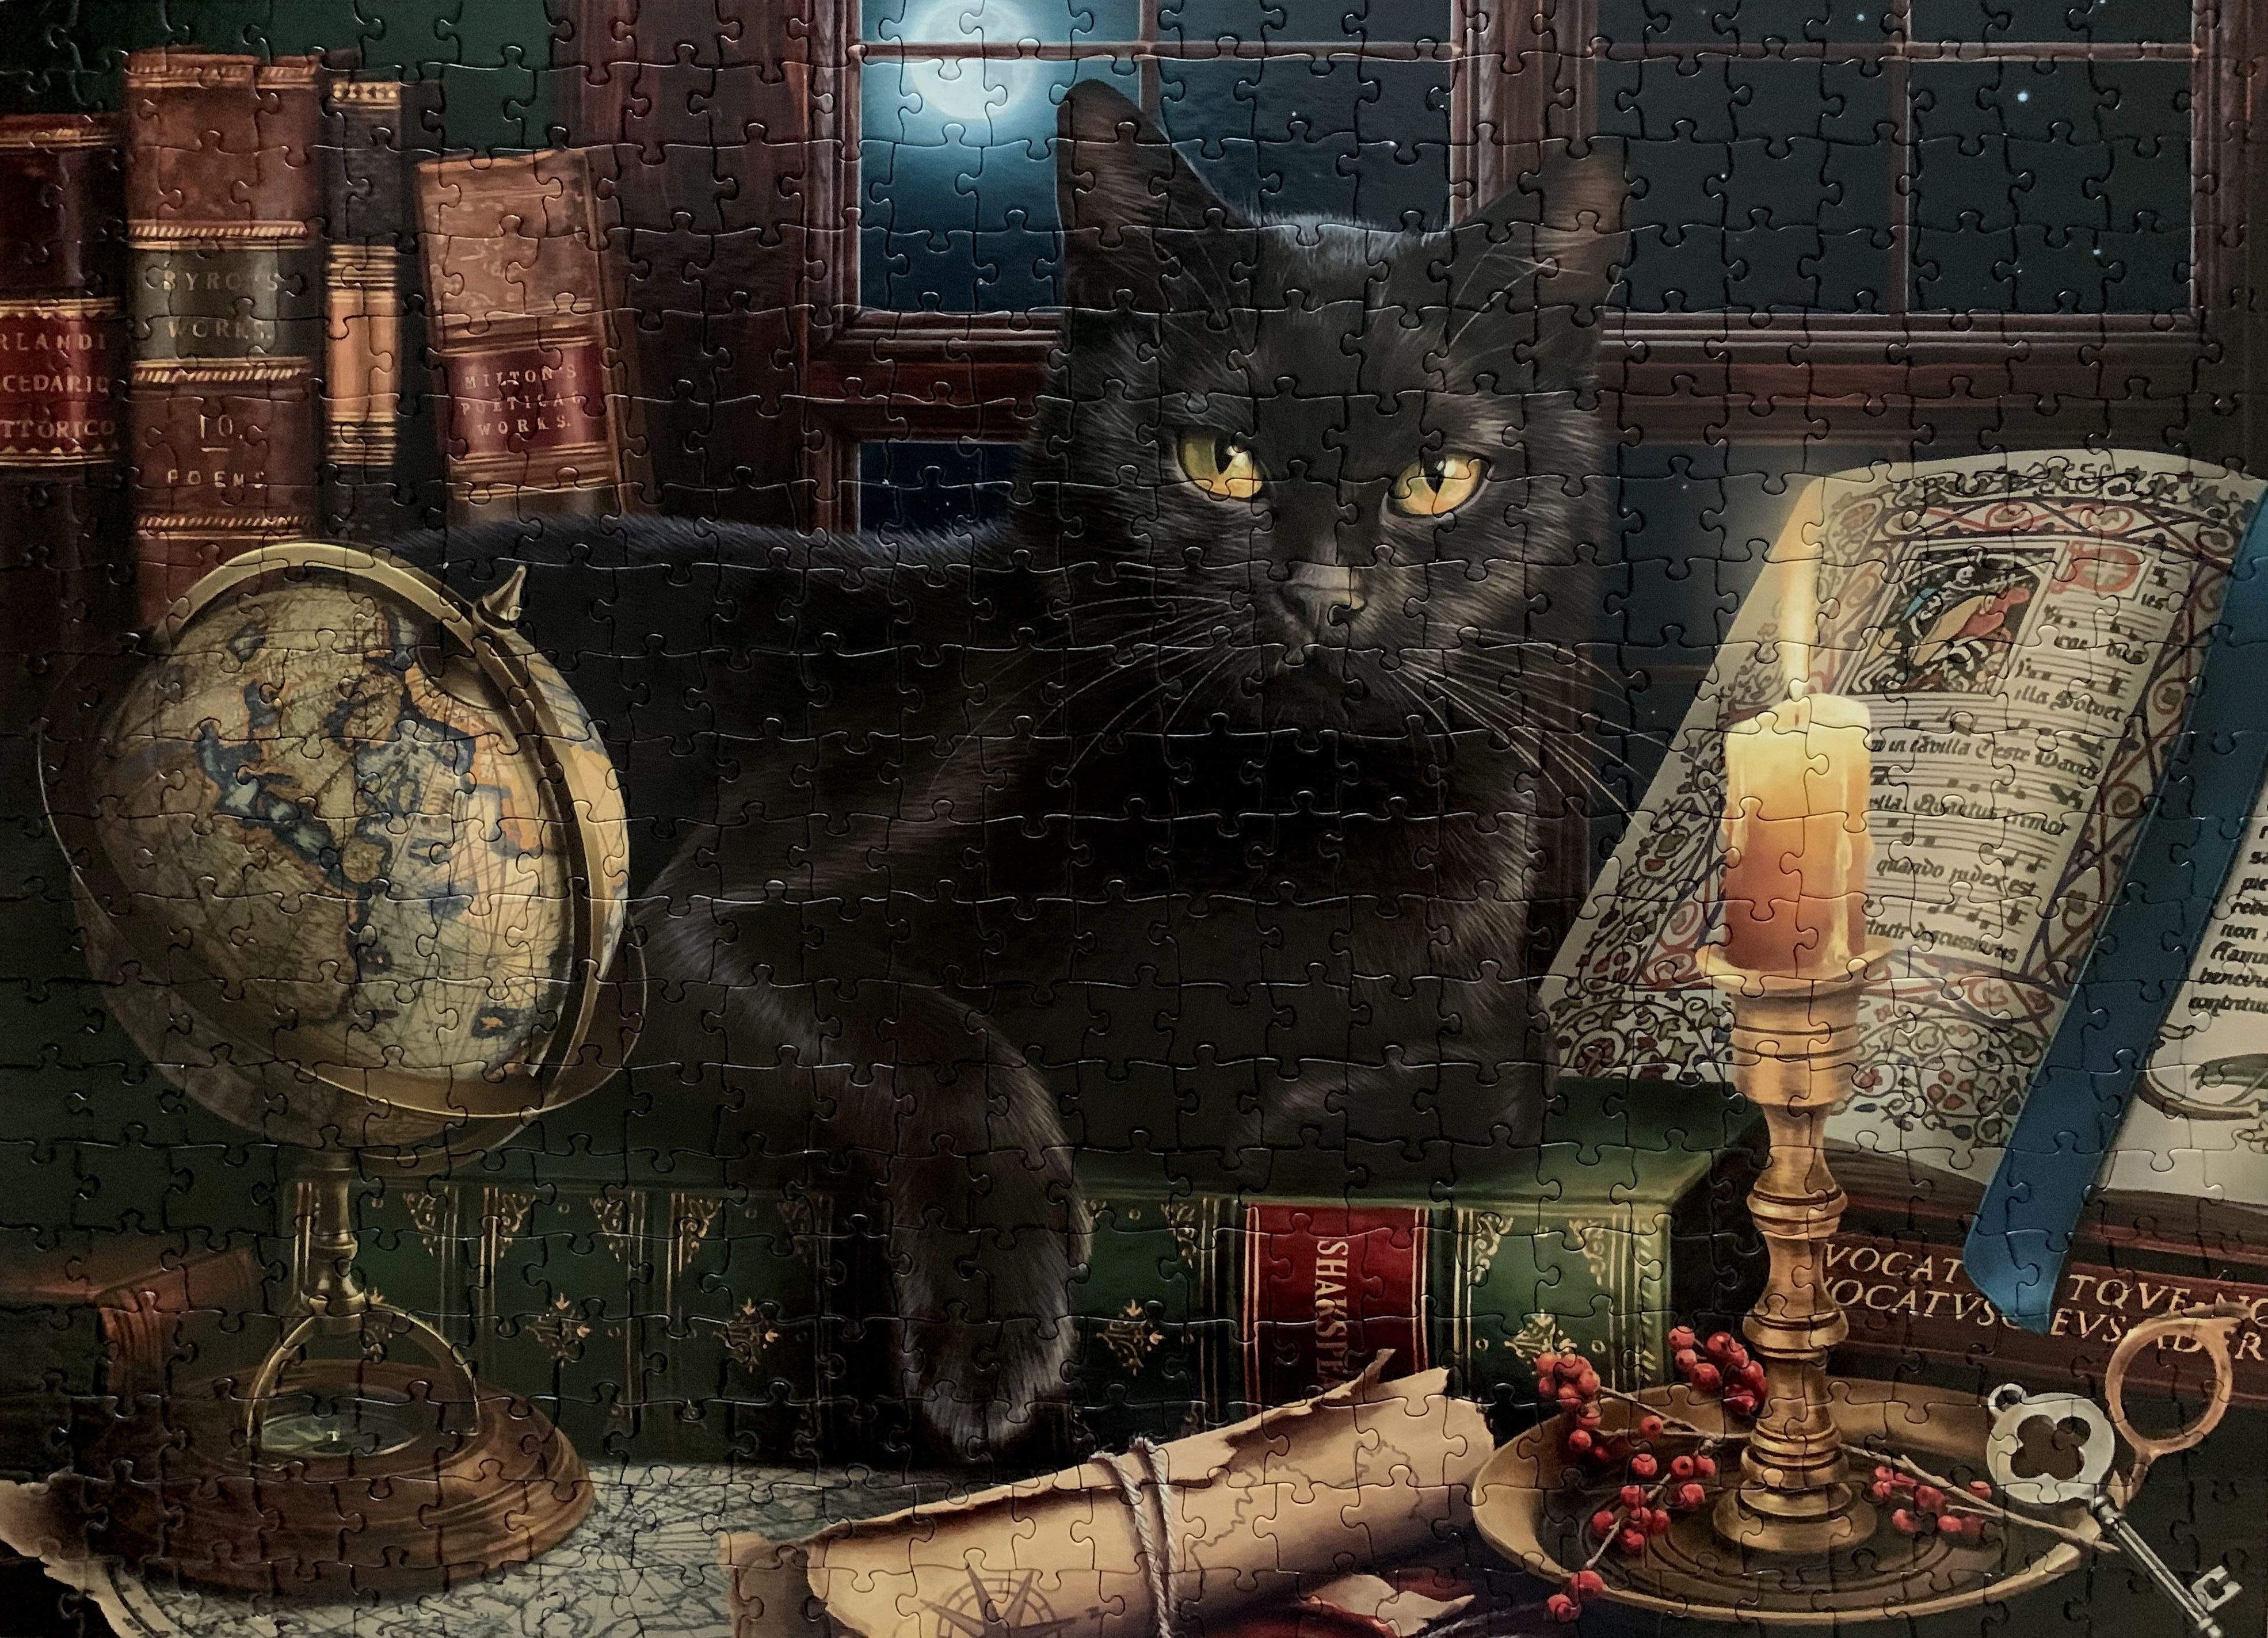 Black Cat By Candlelight, art by Image World, release year